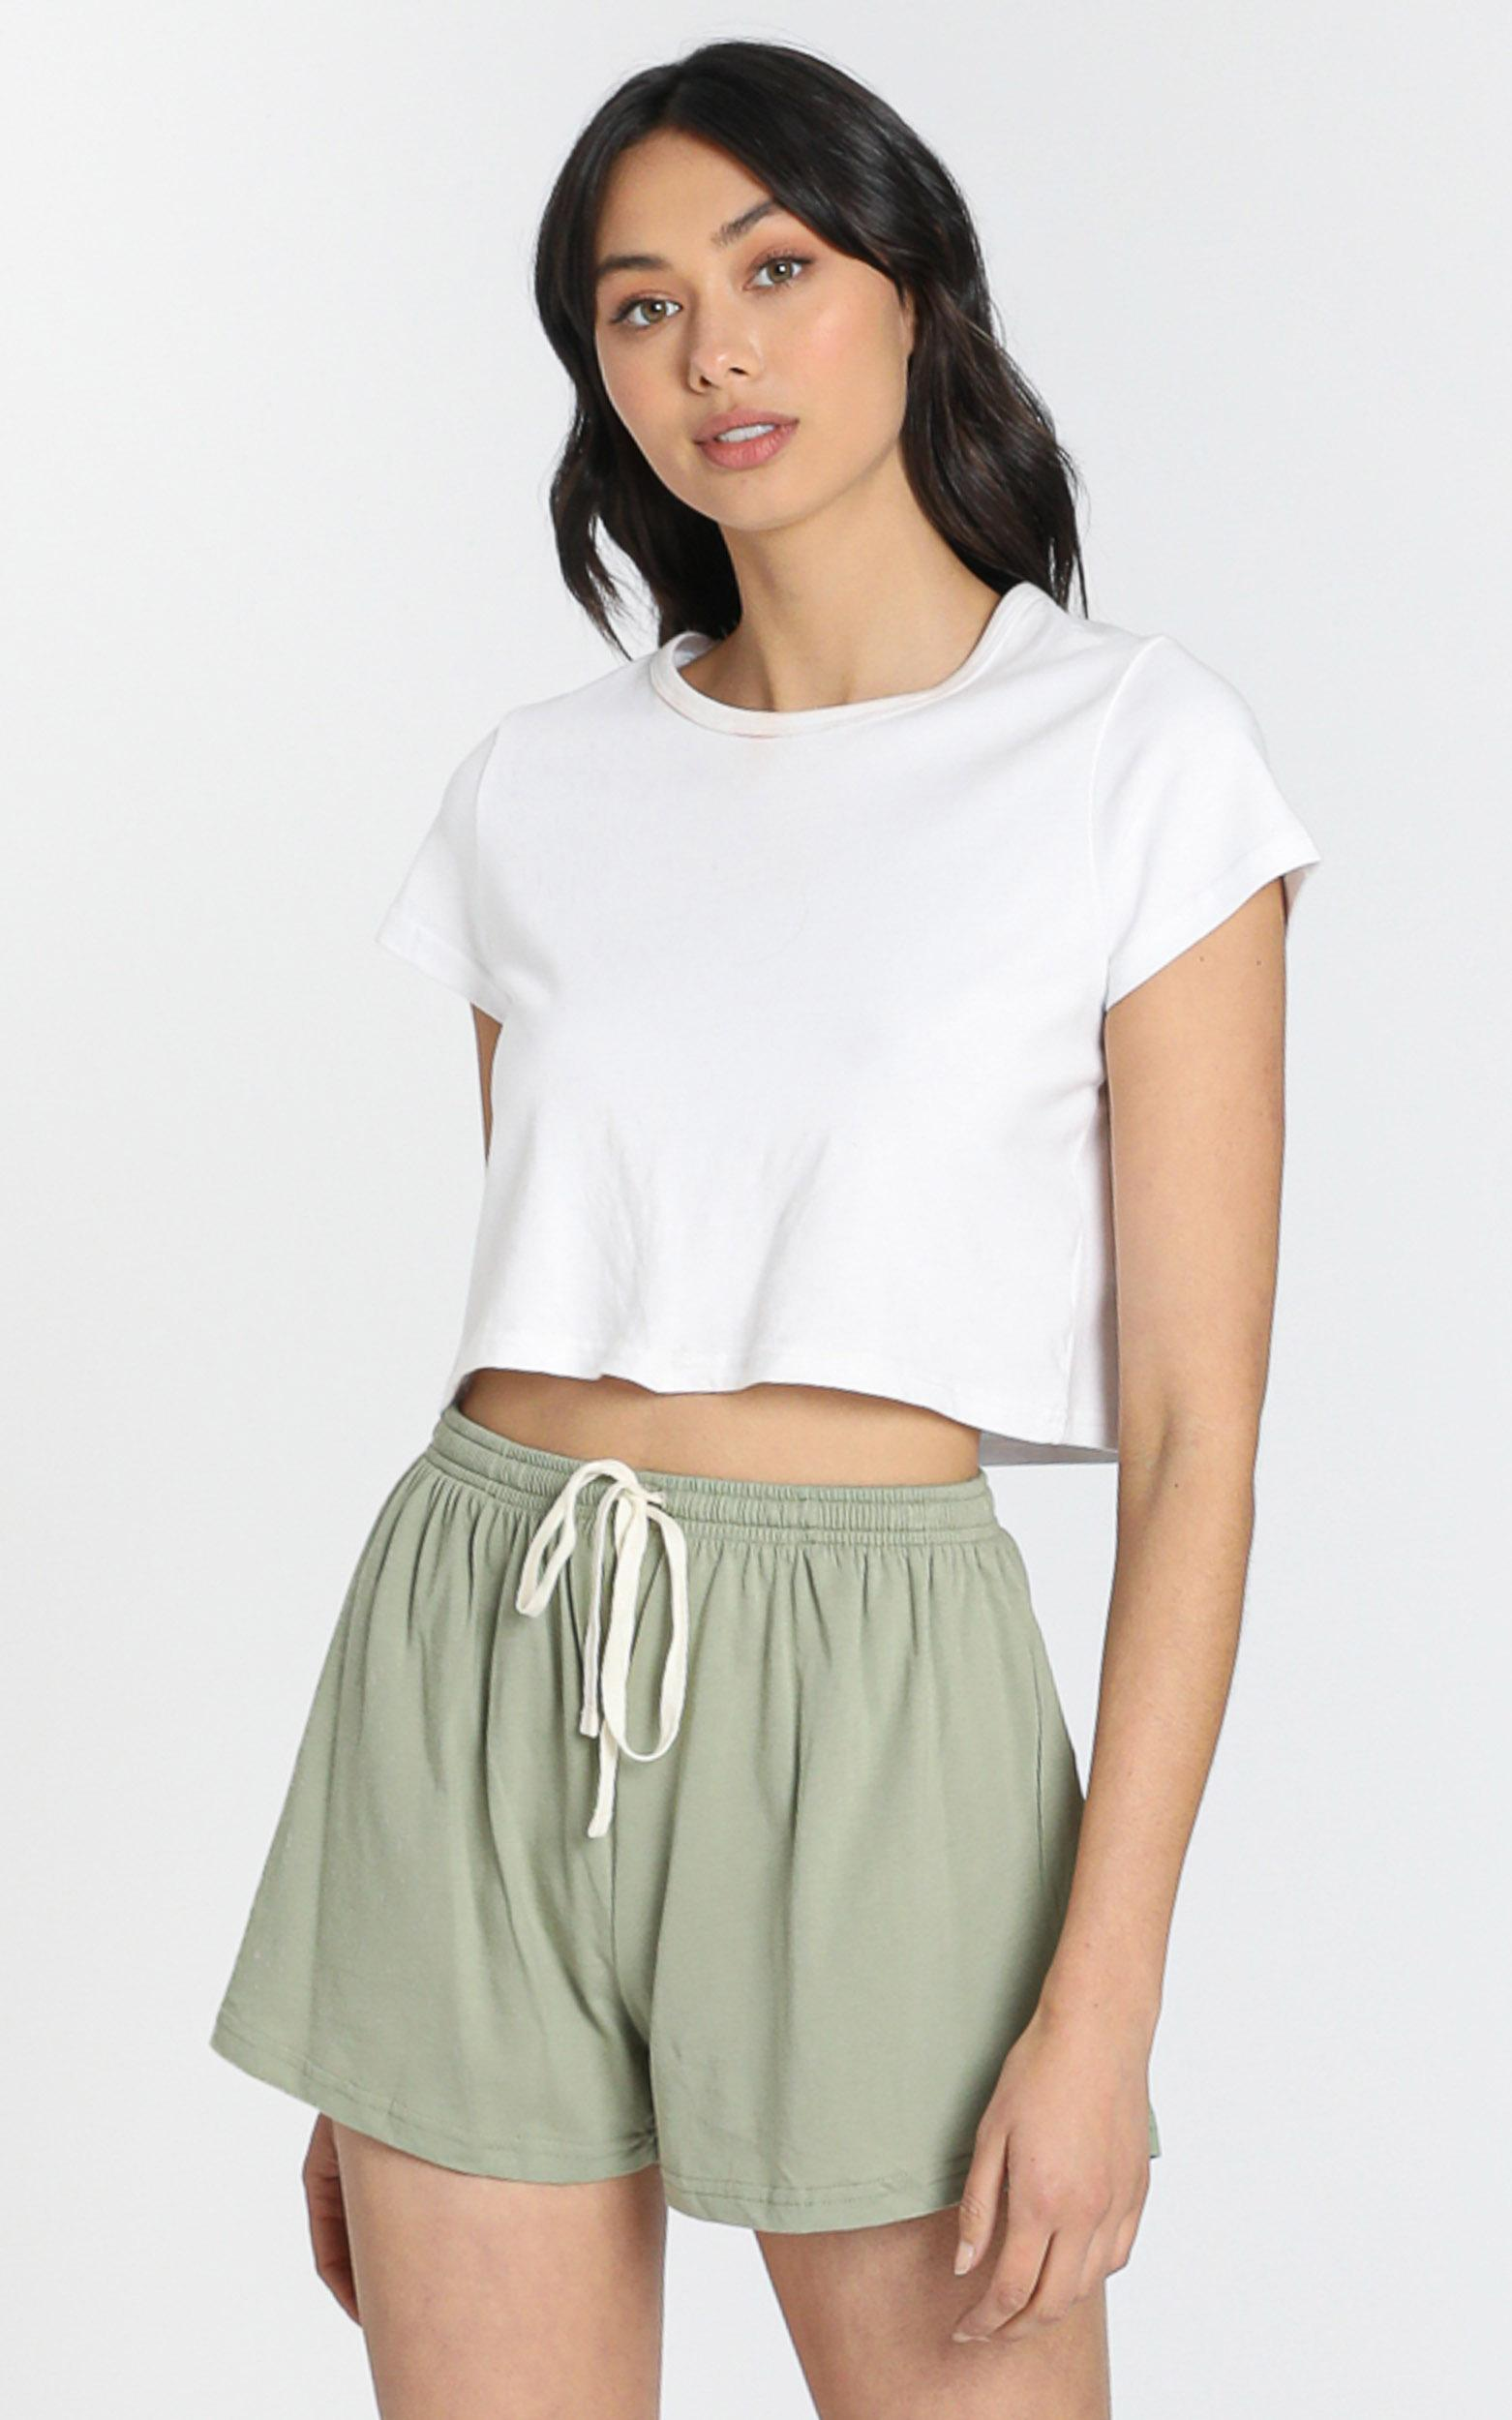 AS Colour - Jersey Shorts in Avocado - XS, Khaki, hi-res image number null